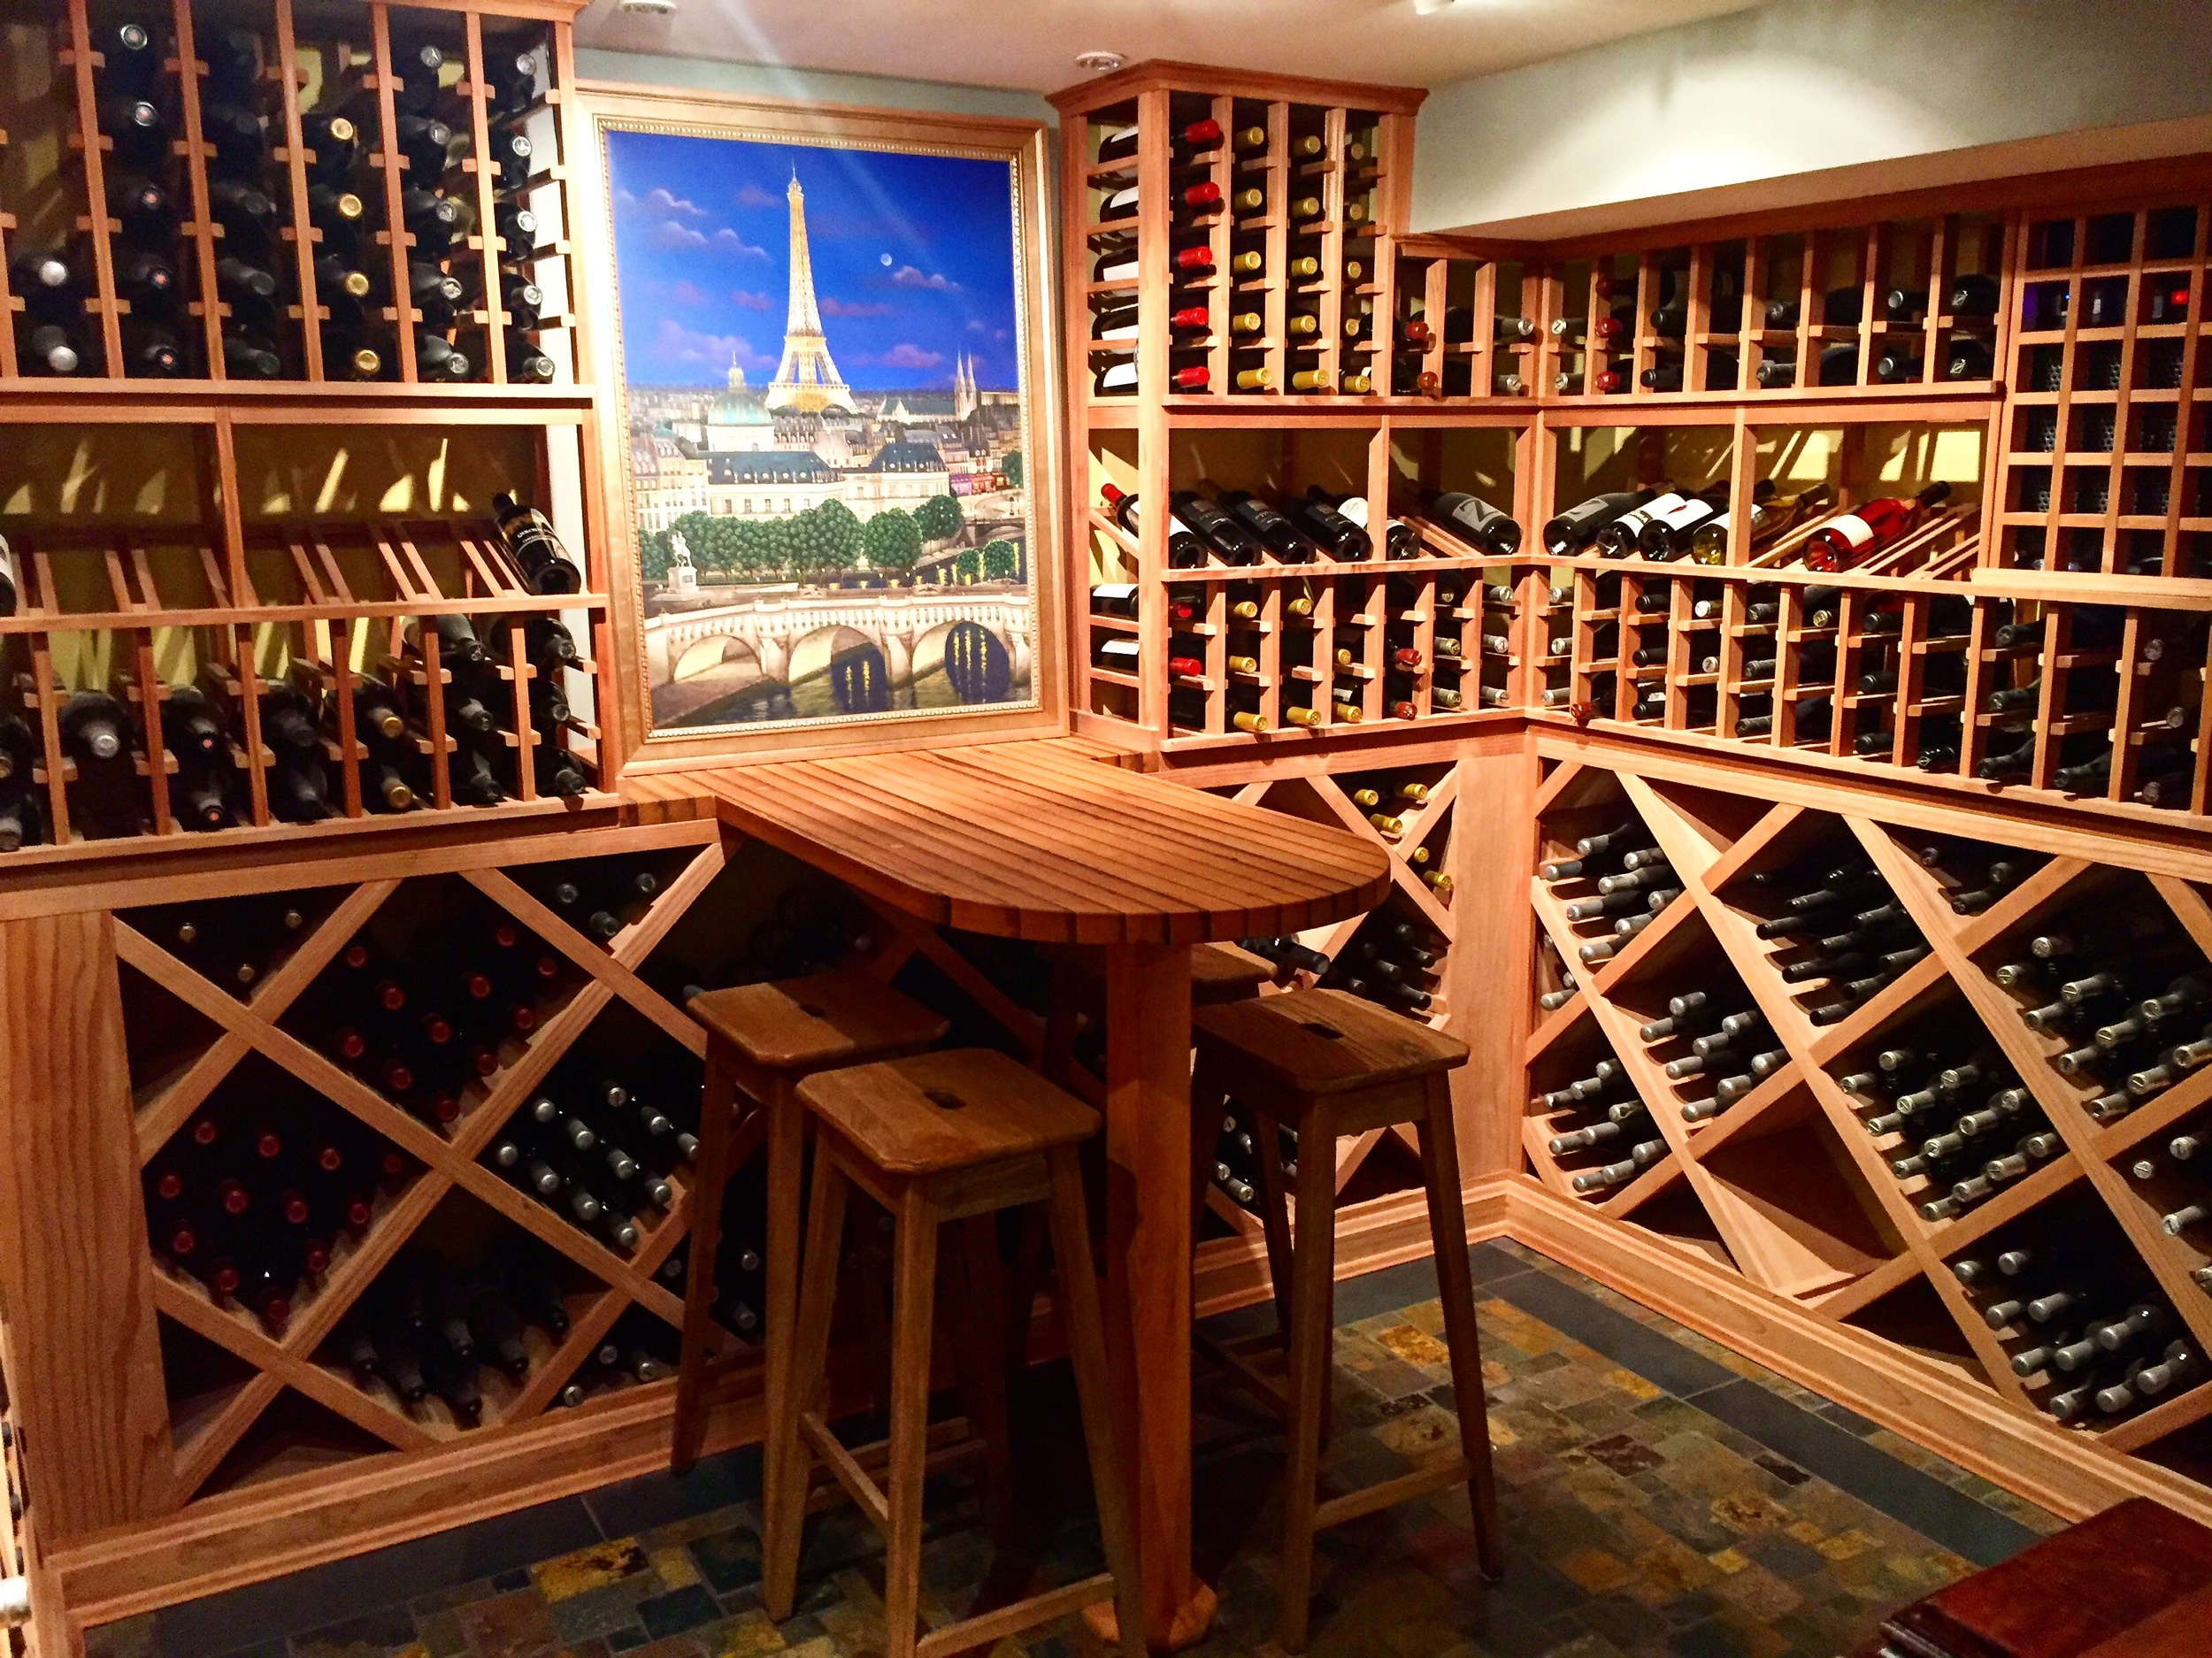 Everyone needs a wine cellar, right? Although not a necessity, the wine cellar in this house in NW Portland gave me major wine goals!